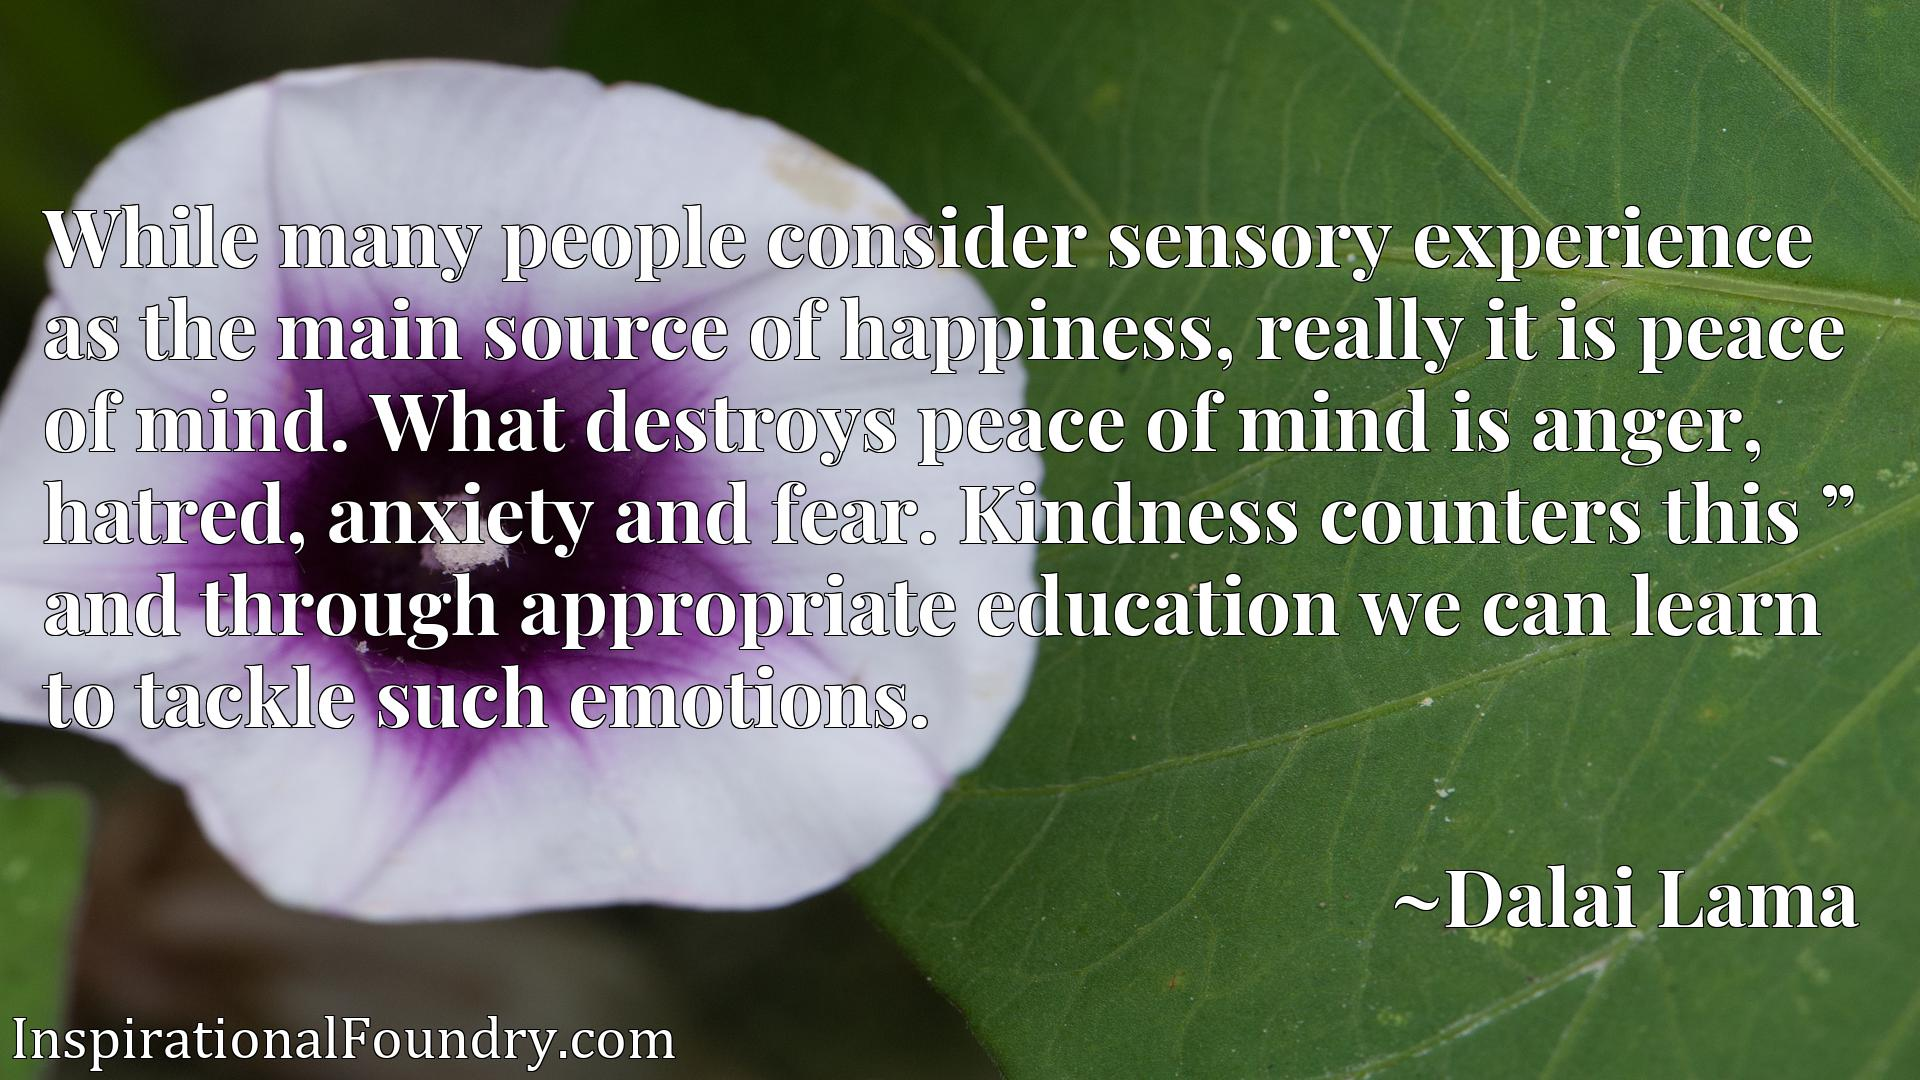 """While many people consider sensory experience as the main source of happiness, really it is peace of mind. What destroys peace of mind is anger, hatred, anxiety and fear. Kindness counters this """" and through appropriate education we can learn to tackle such emotions."""